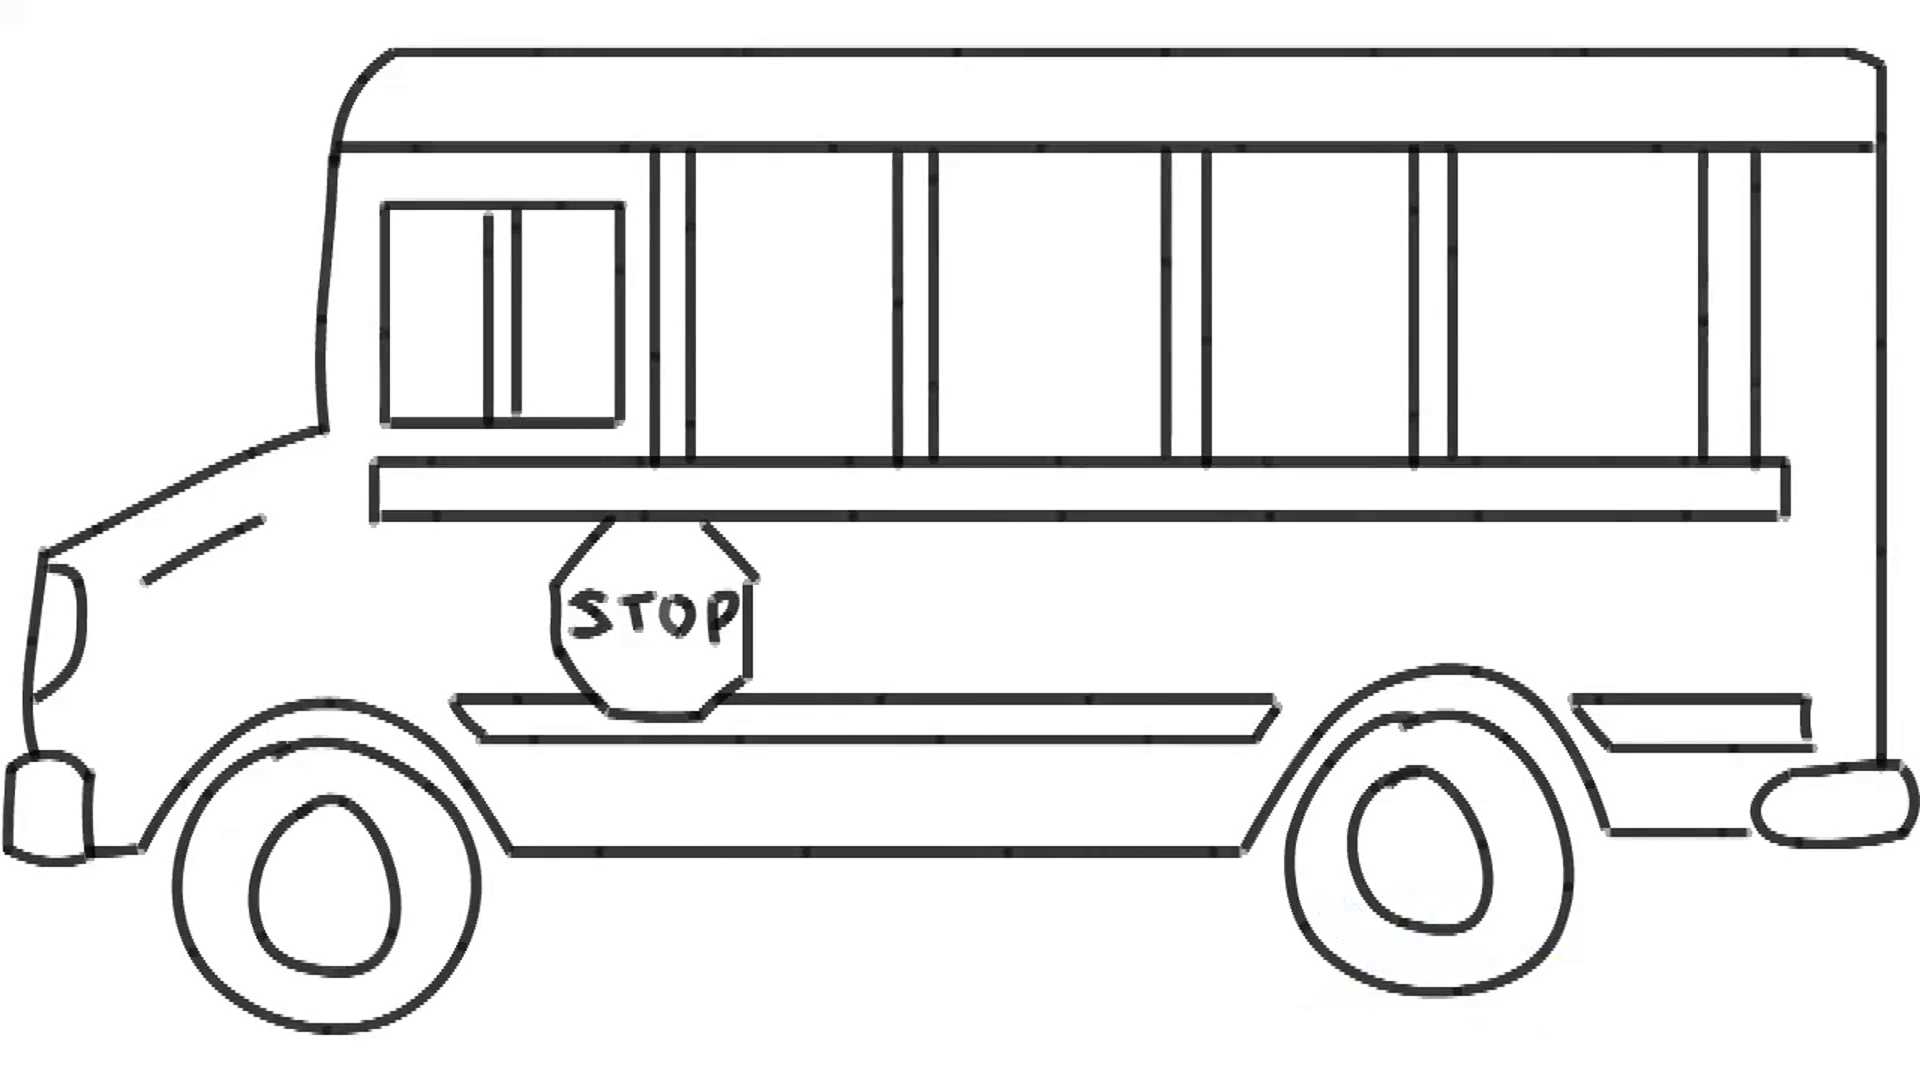 van drawing man sketching bus van on whiteboard background animated van drawing